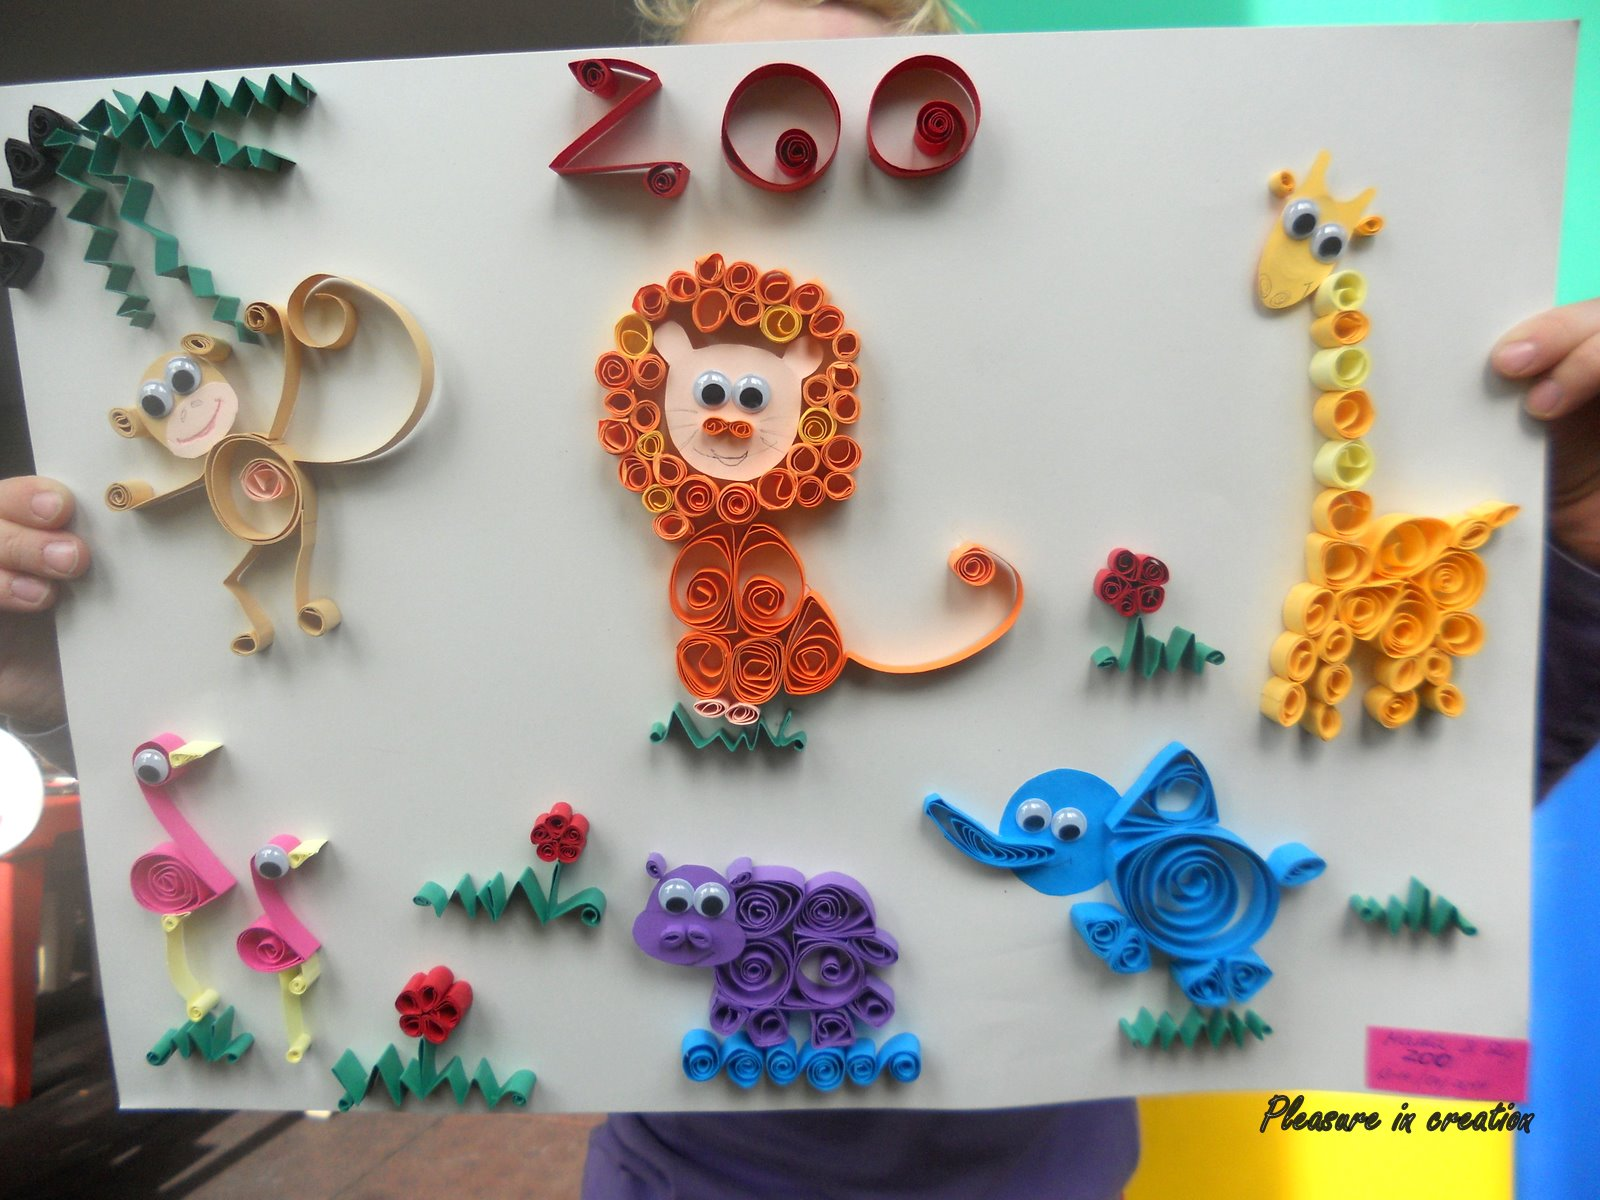 Pleasure in creation quilled zoo for Paper quilling paper